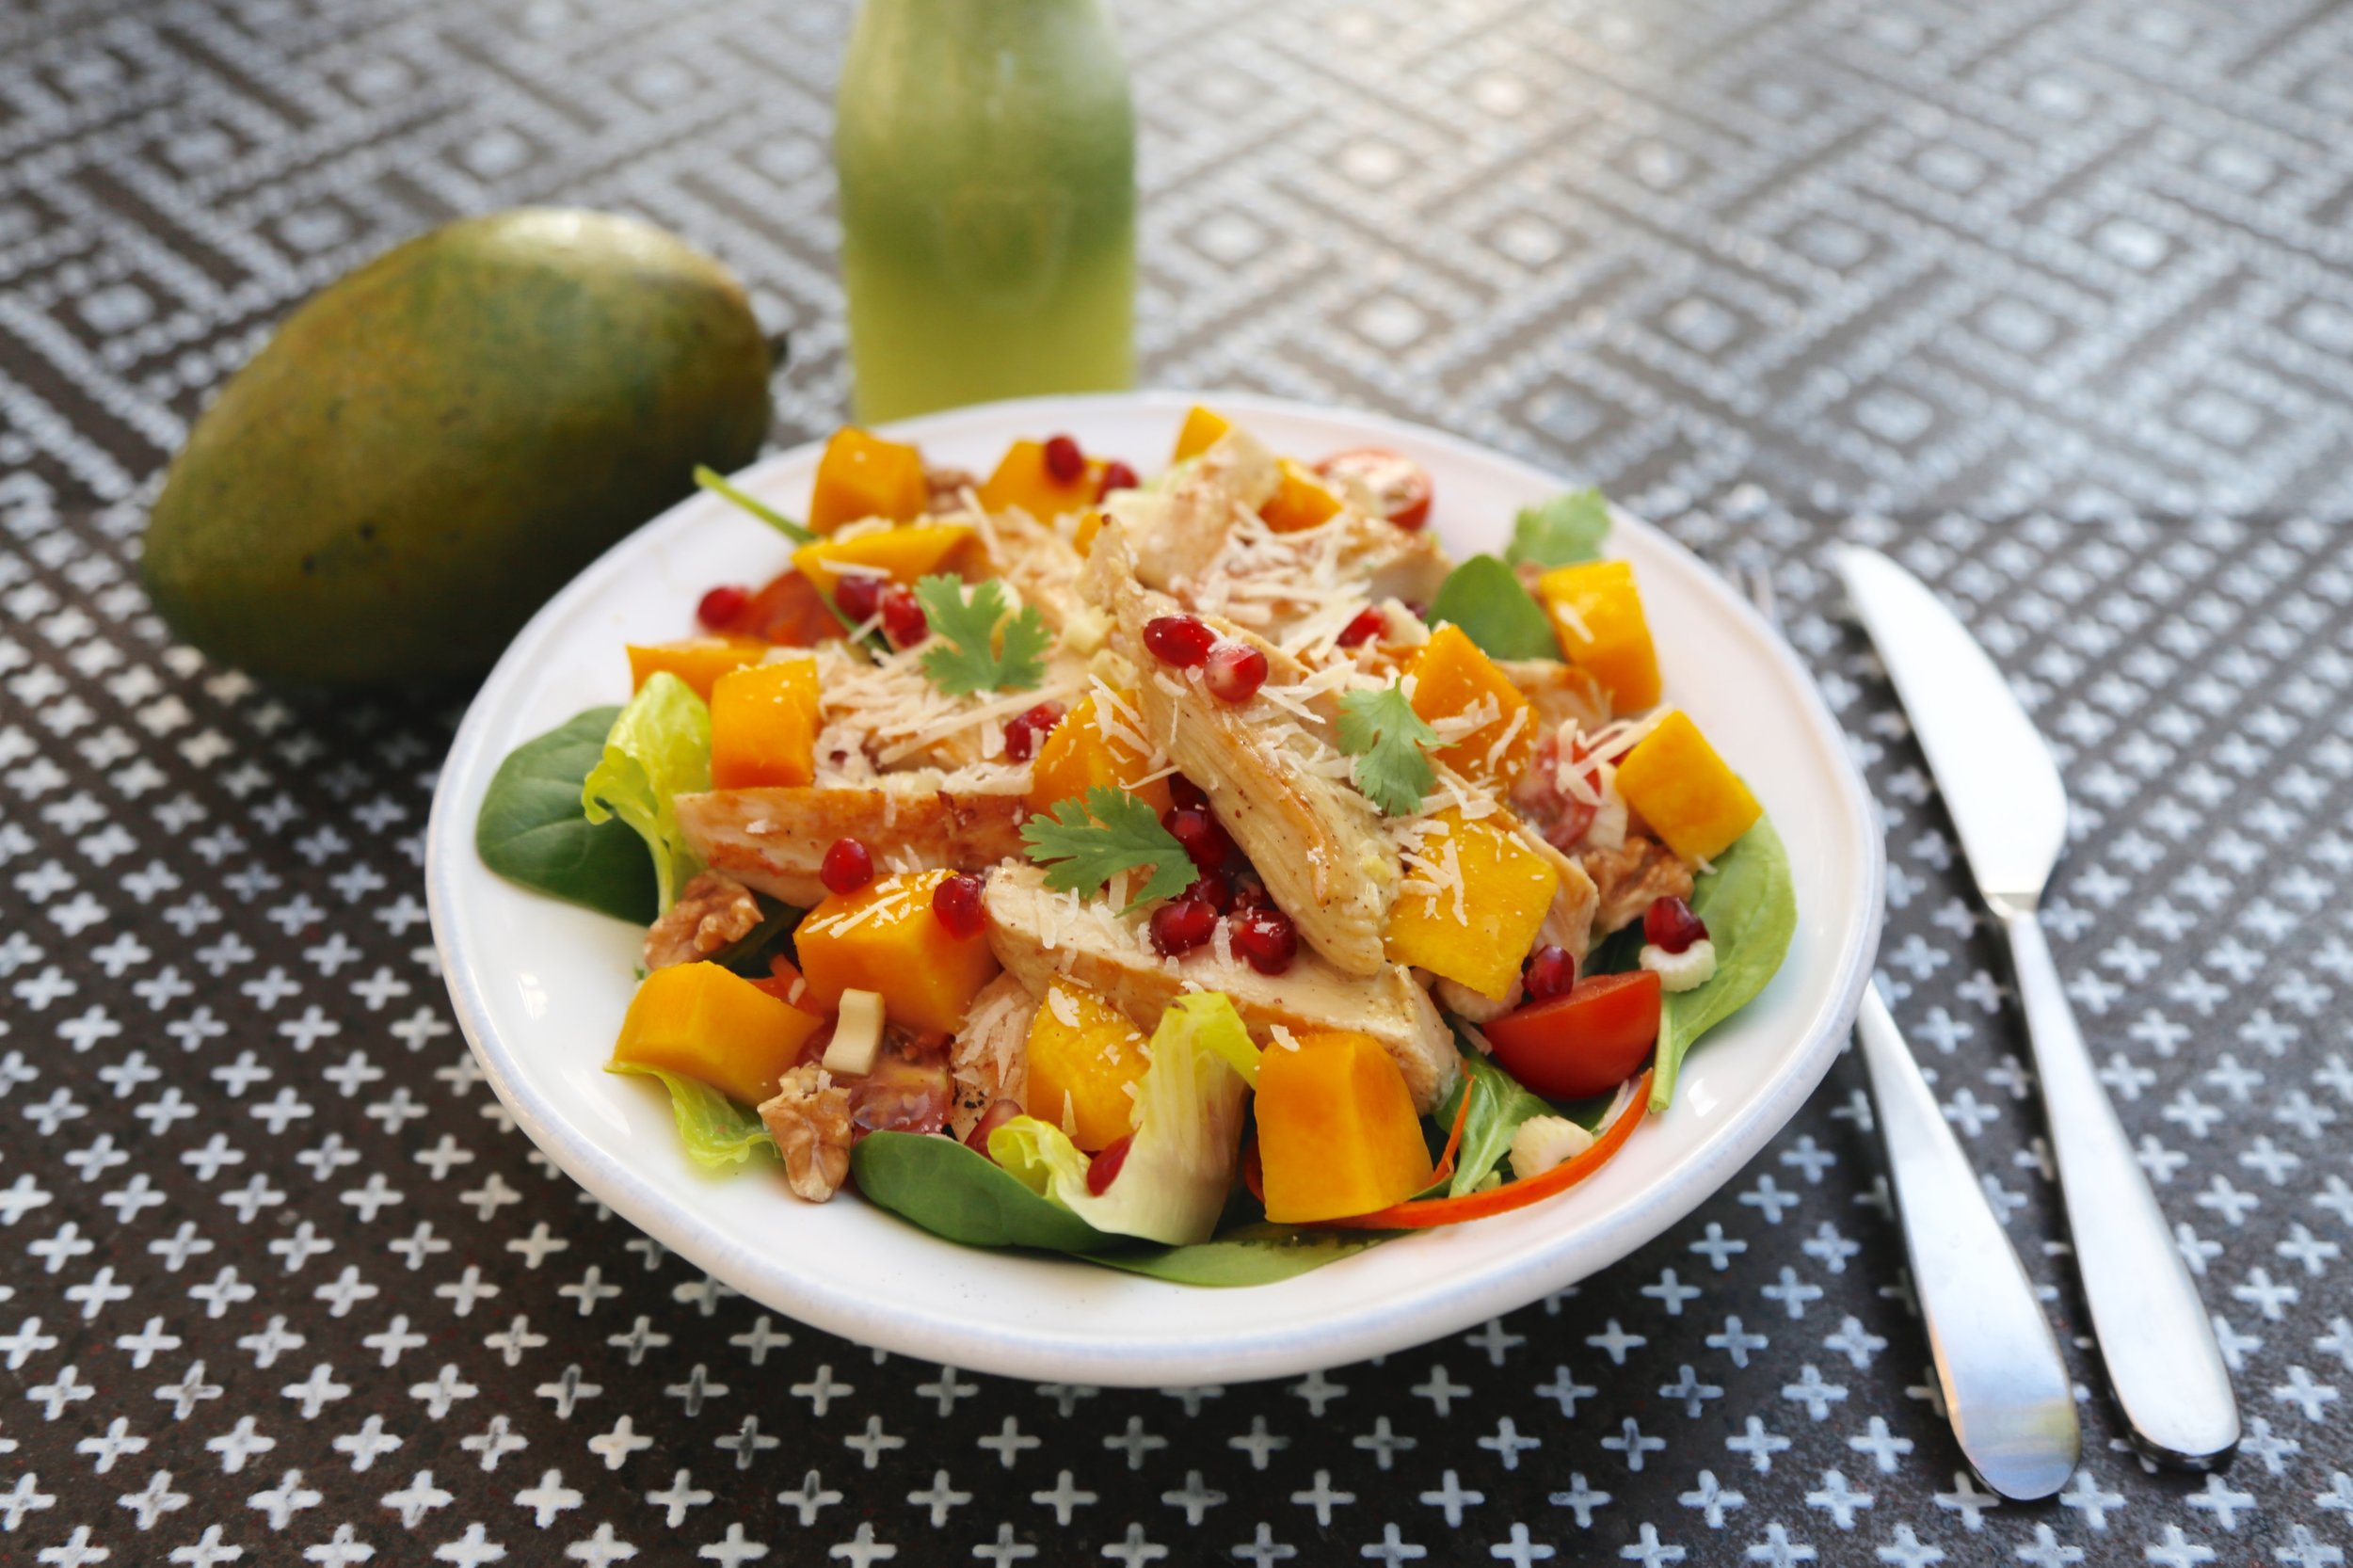 Grilled Chicken, mix leaves, cherry tomato, parsley, walnuts, mango, celery, pomegranate and parmesan cheese